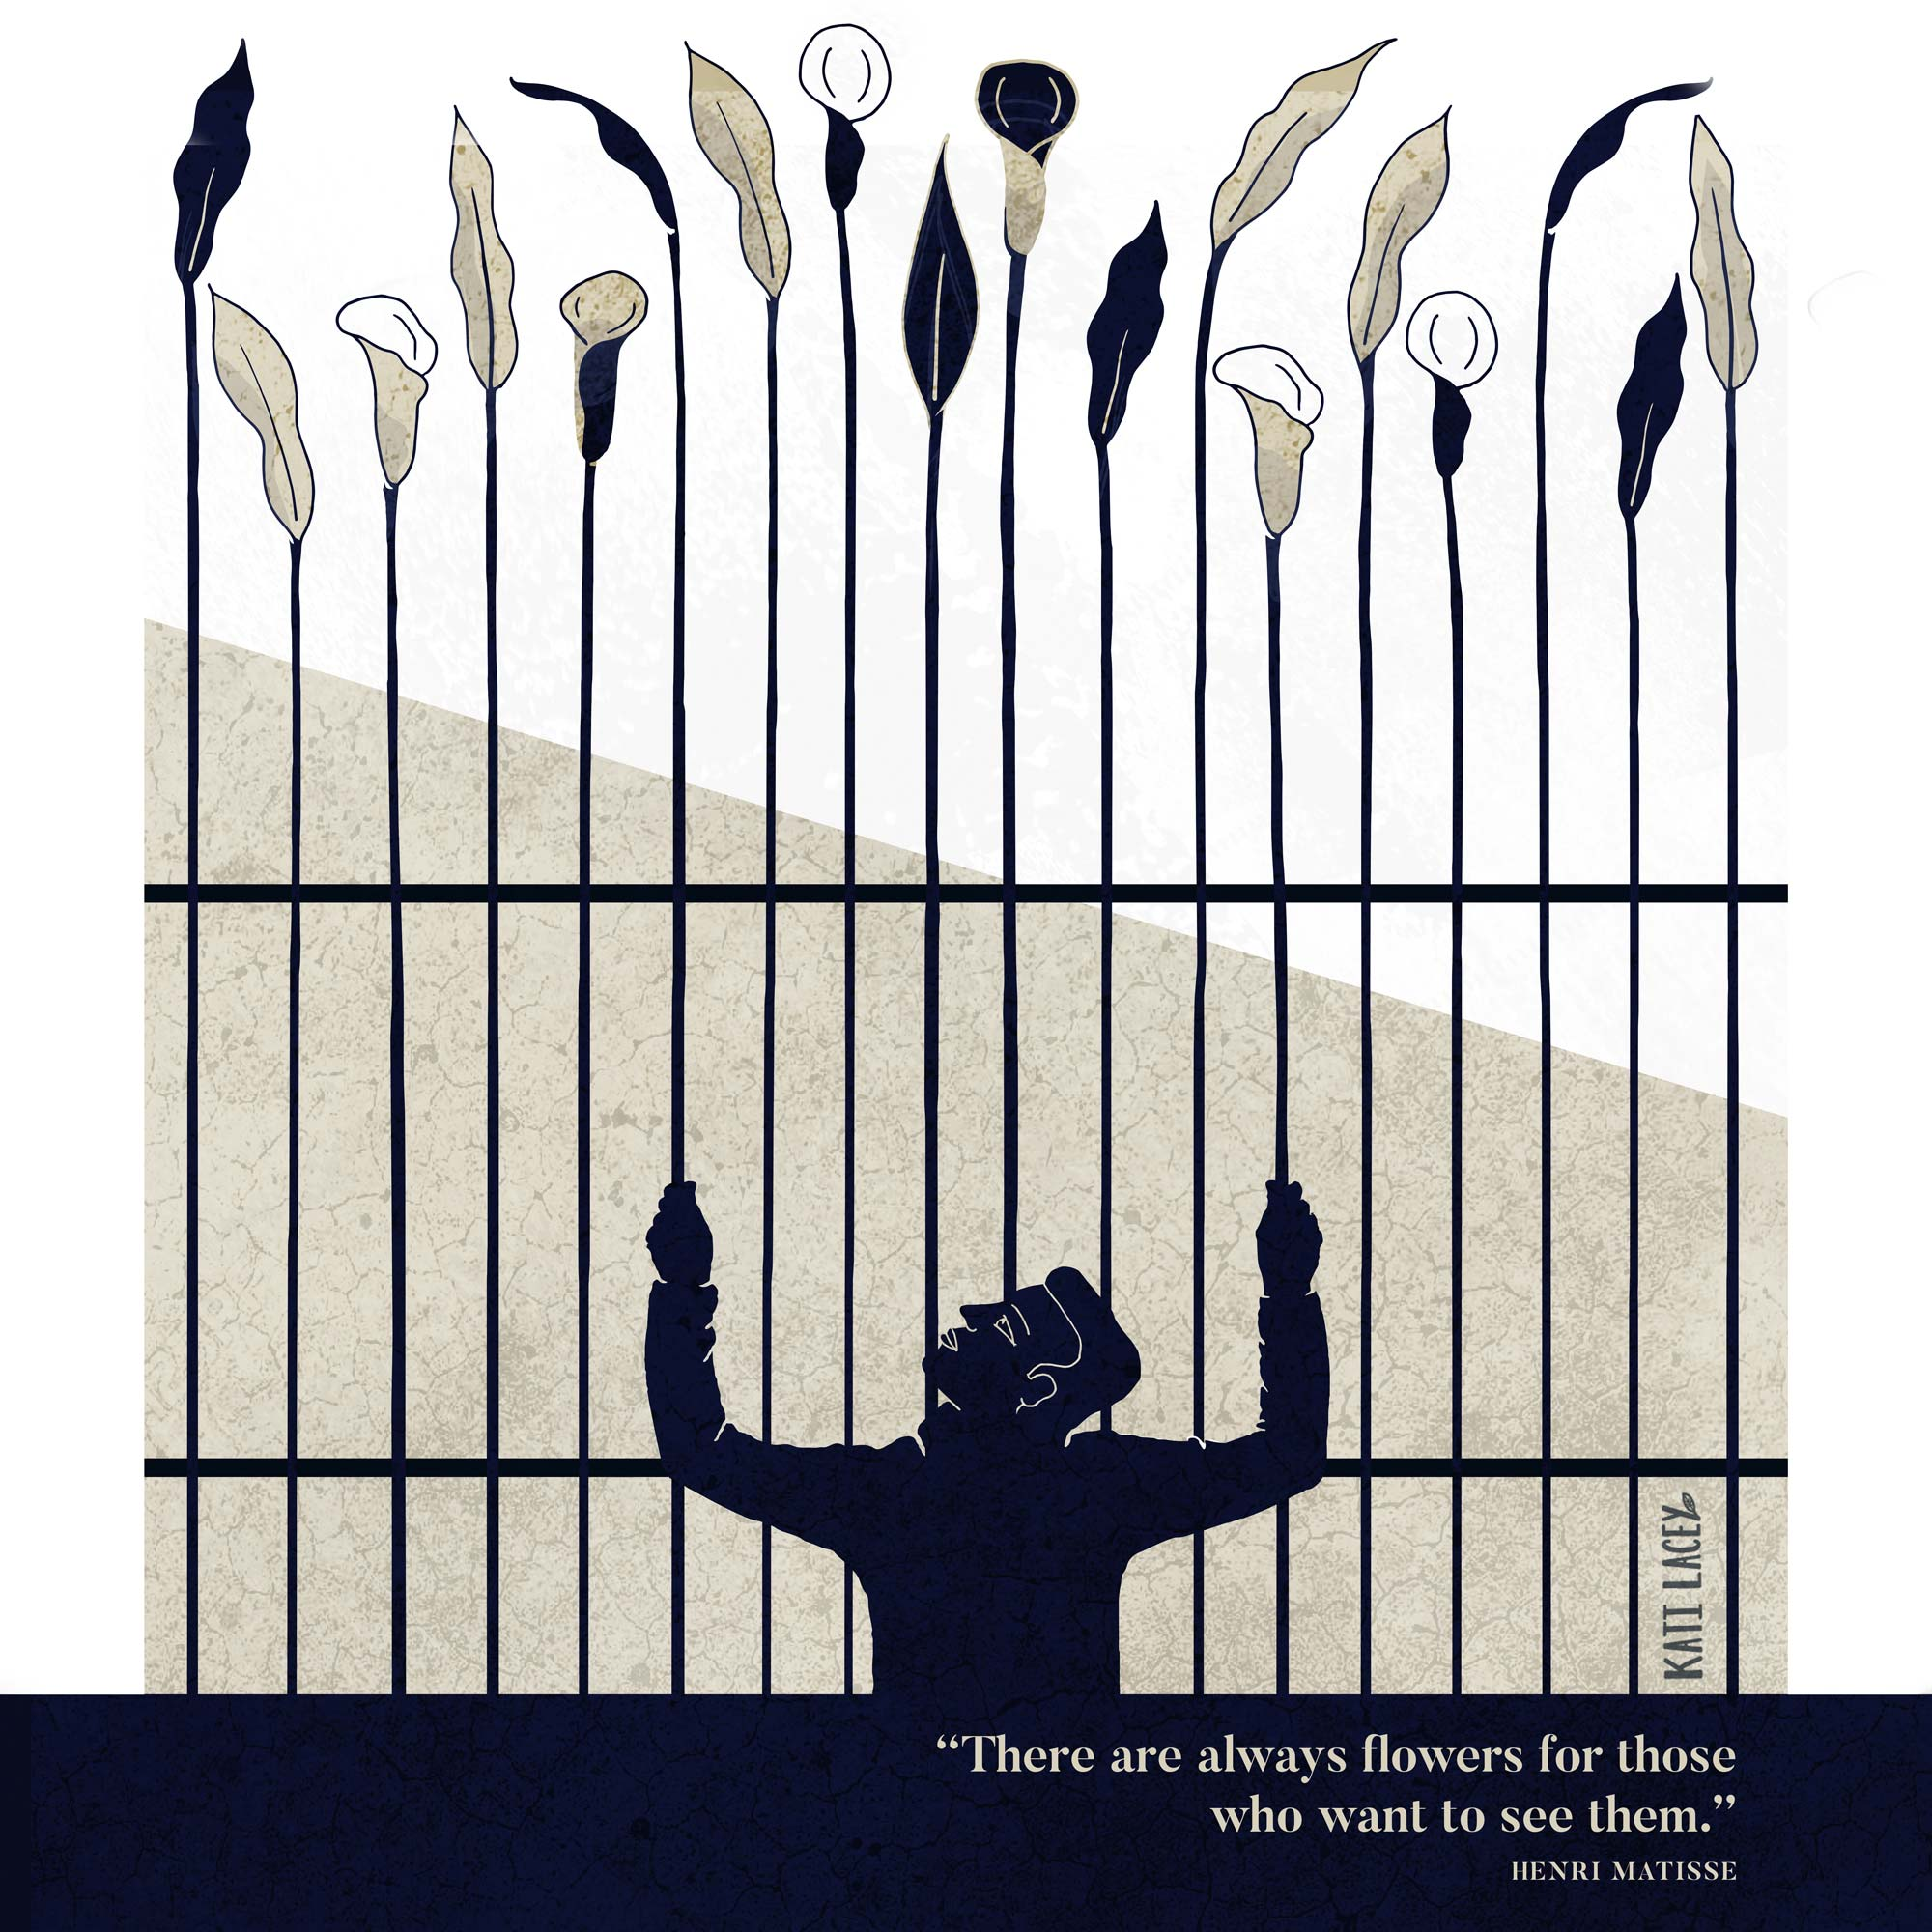 Flower prison quote illustration:There-are-always-flowers-for-those-who-want-to-see-them.-HENRI-MATISSE-illustration-by-KATI-LACEY